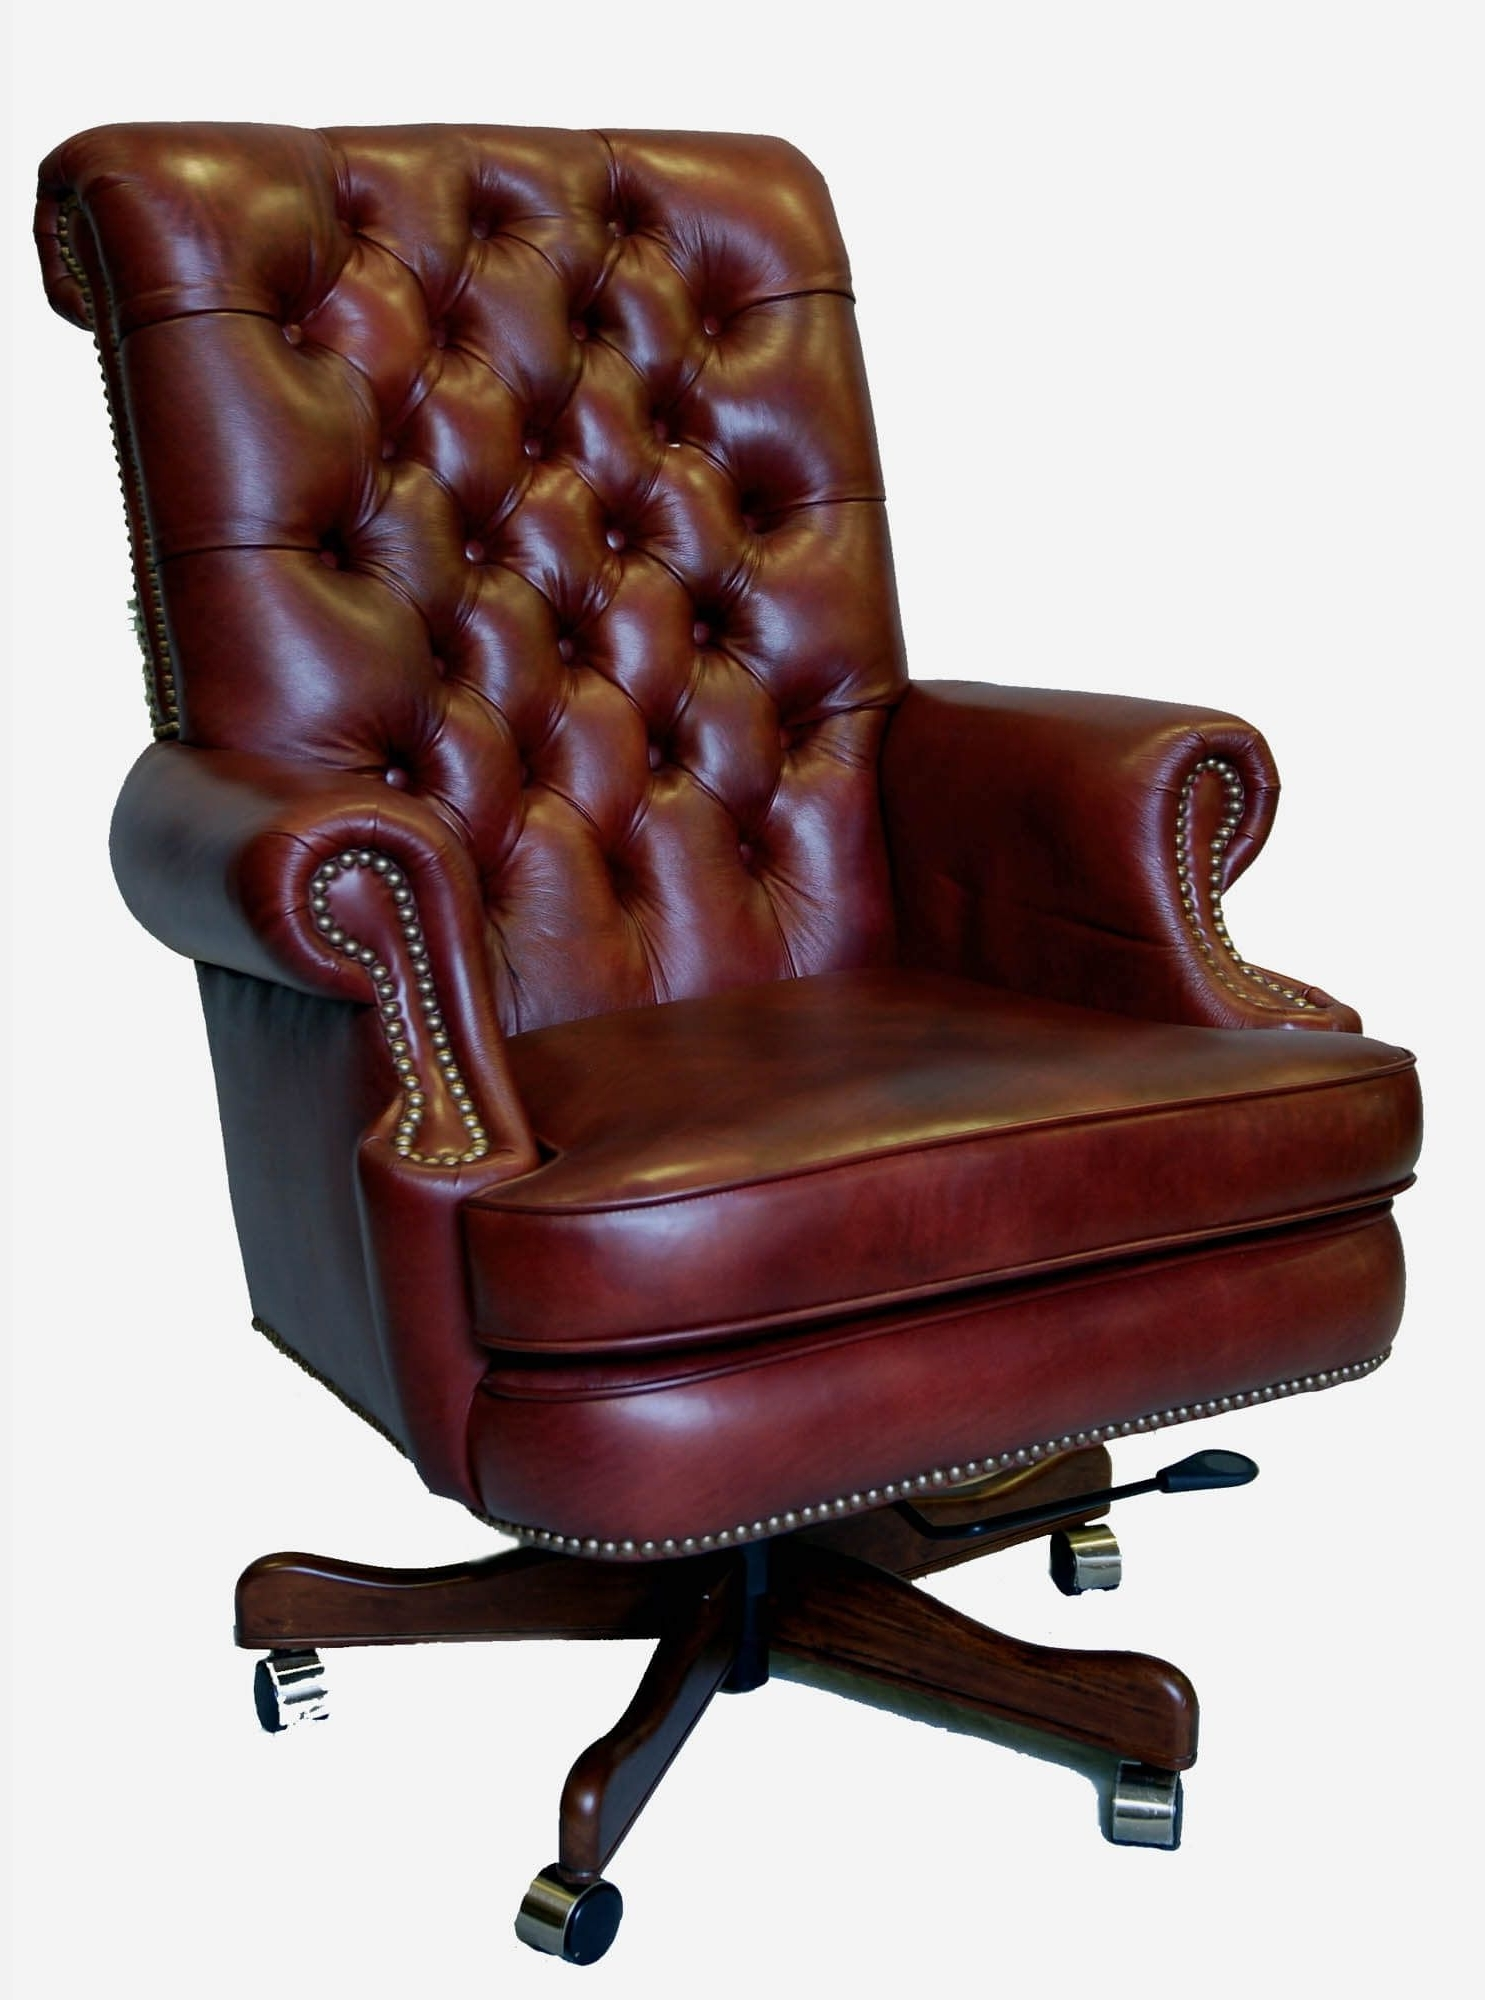 Most Recent Leather Swivel Recliner Executive Office Chairs With Regard To Executive Chairs Manufacturers And Dealers In New Delhi (View 12 of 20)